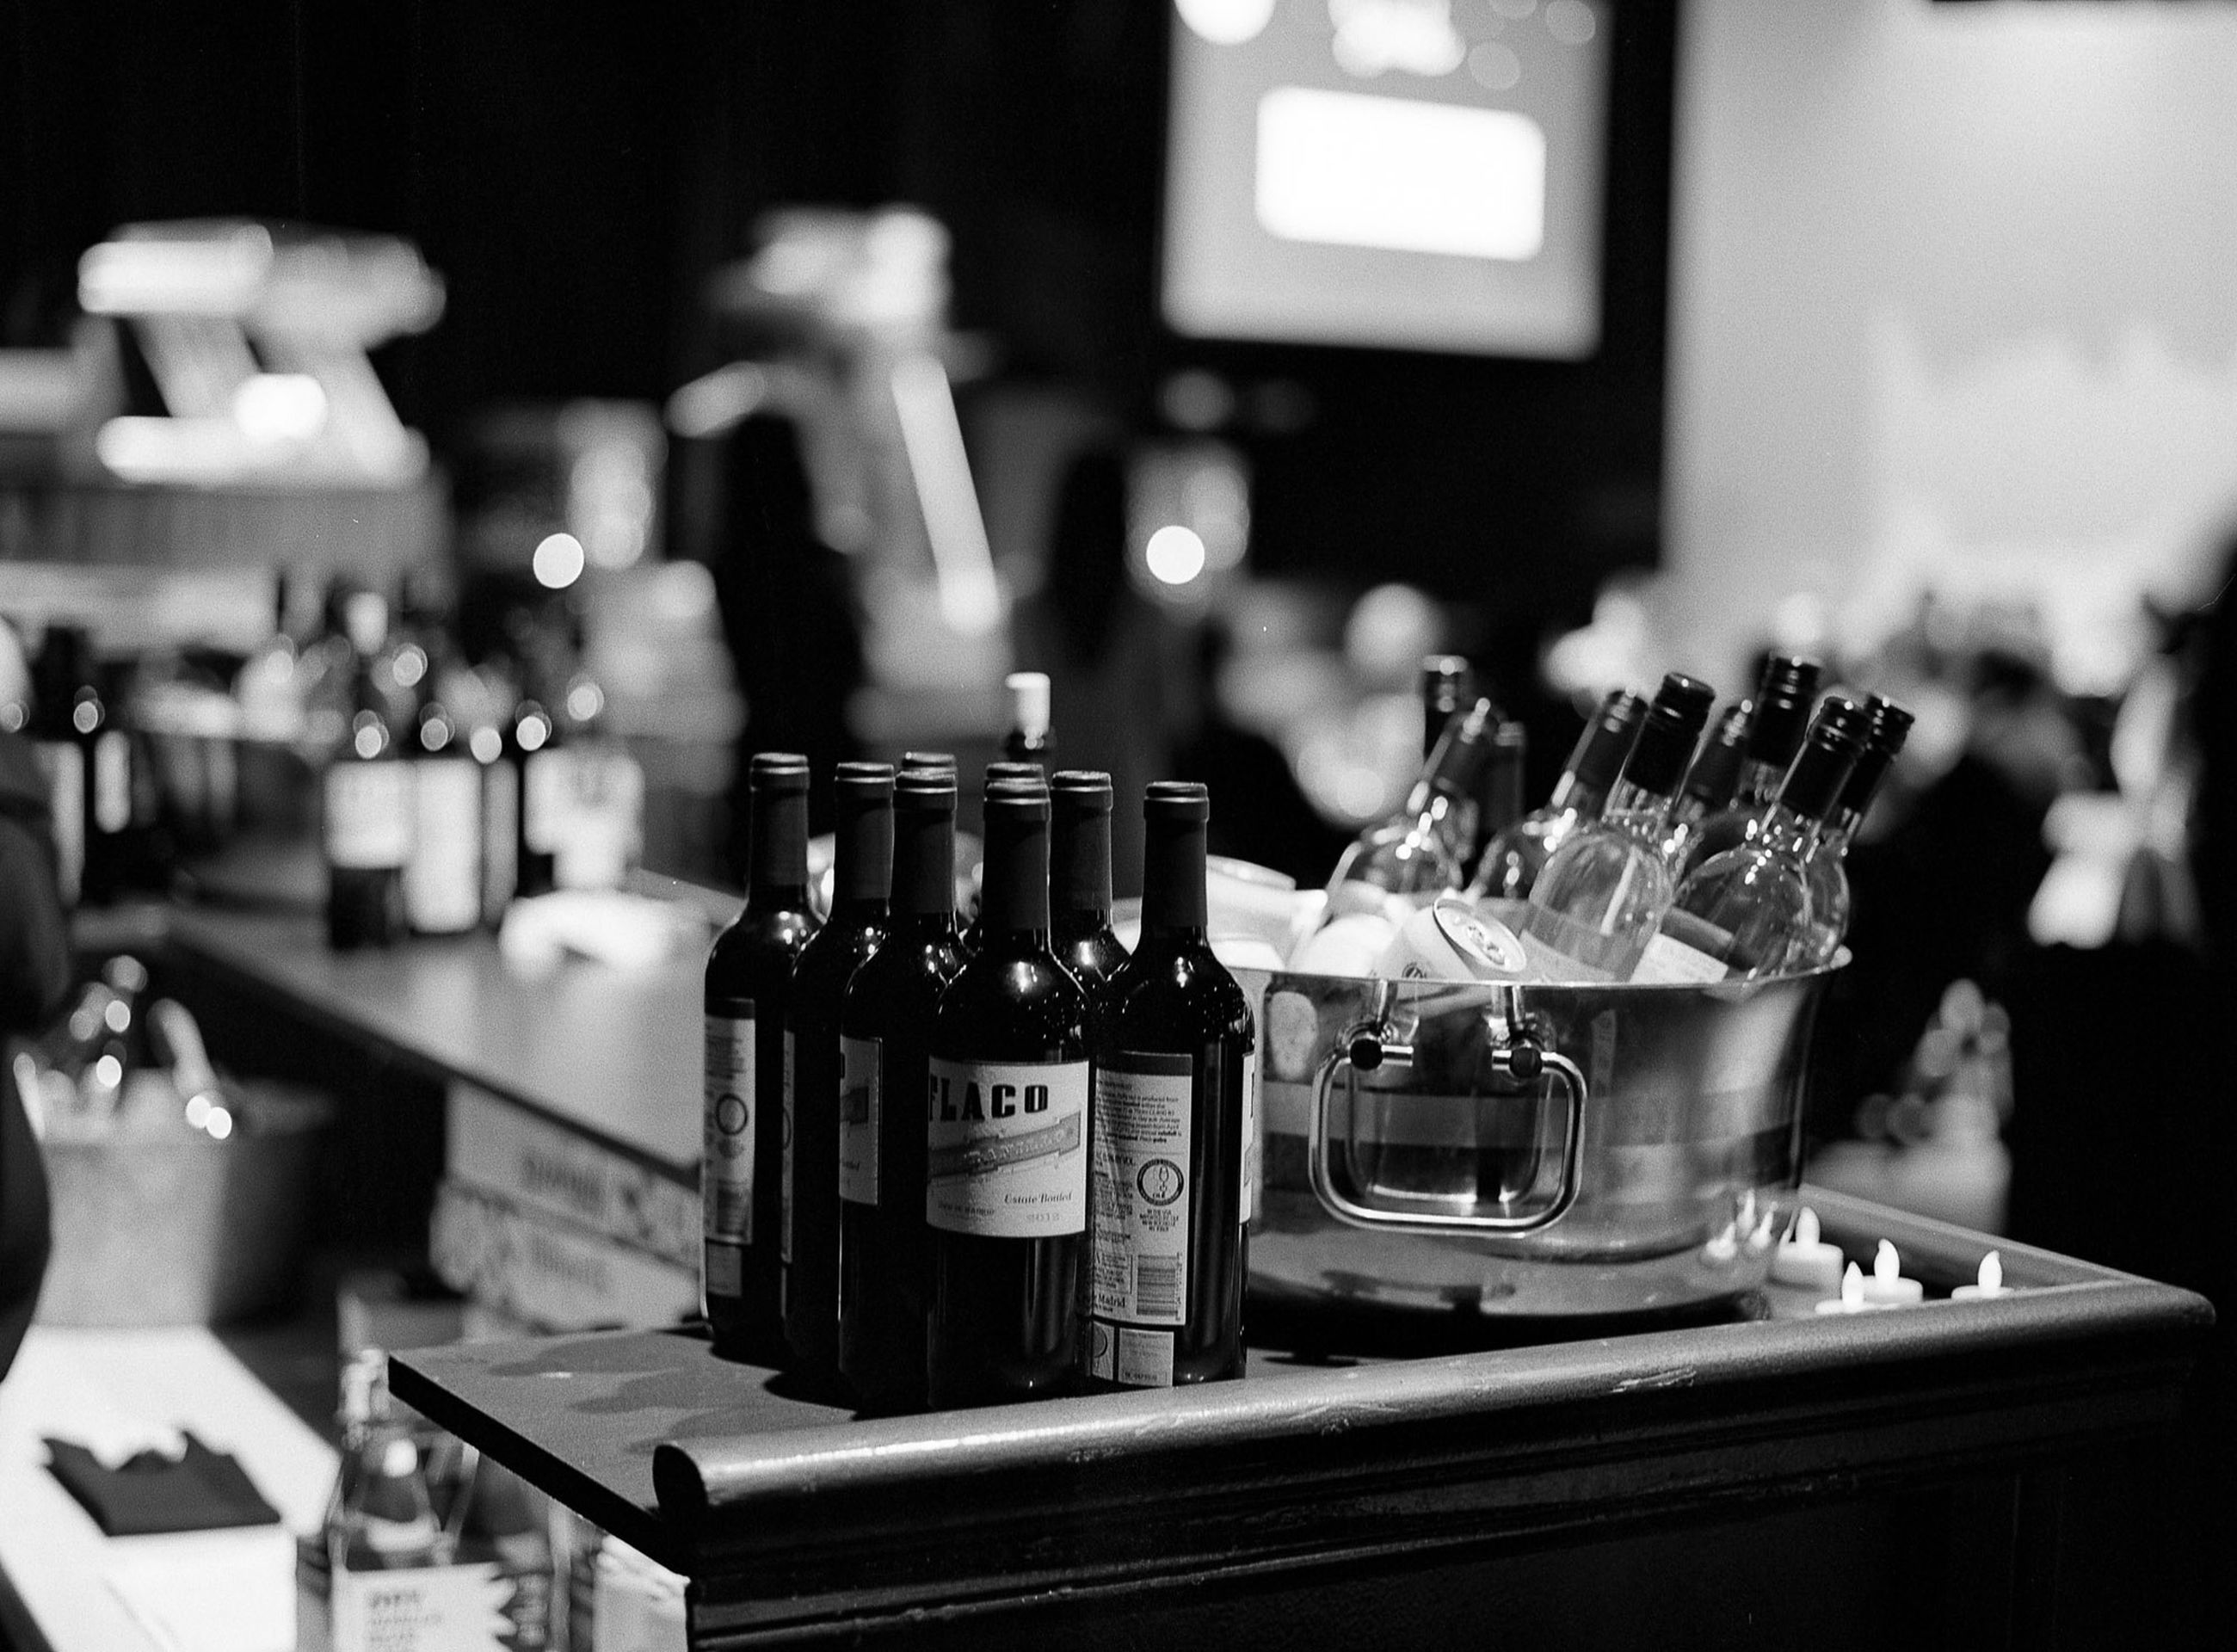 indoors, table, focus on foreground, still life, close-up, selective focus, food and drink, technology, candle, home interior, no people, large group of objects, shelf, variation, bottle, illuminated, restaurant, arrangement, domestic kitchen, music